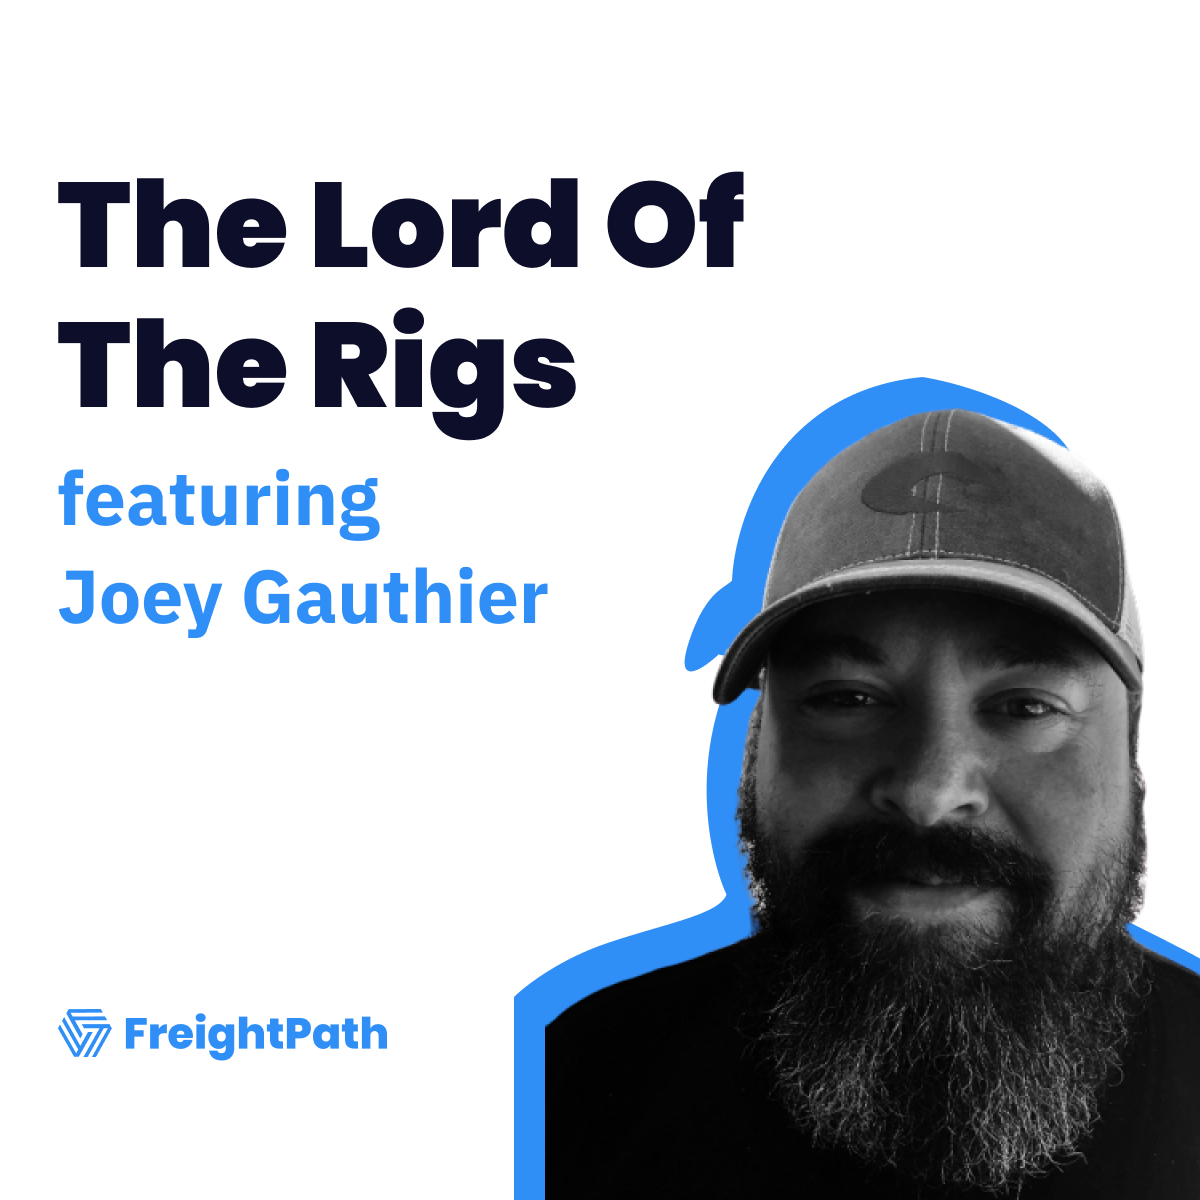 The Importance of Upholding Carrier Safety With Joey Gauthier